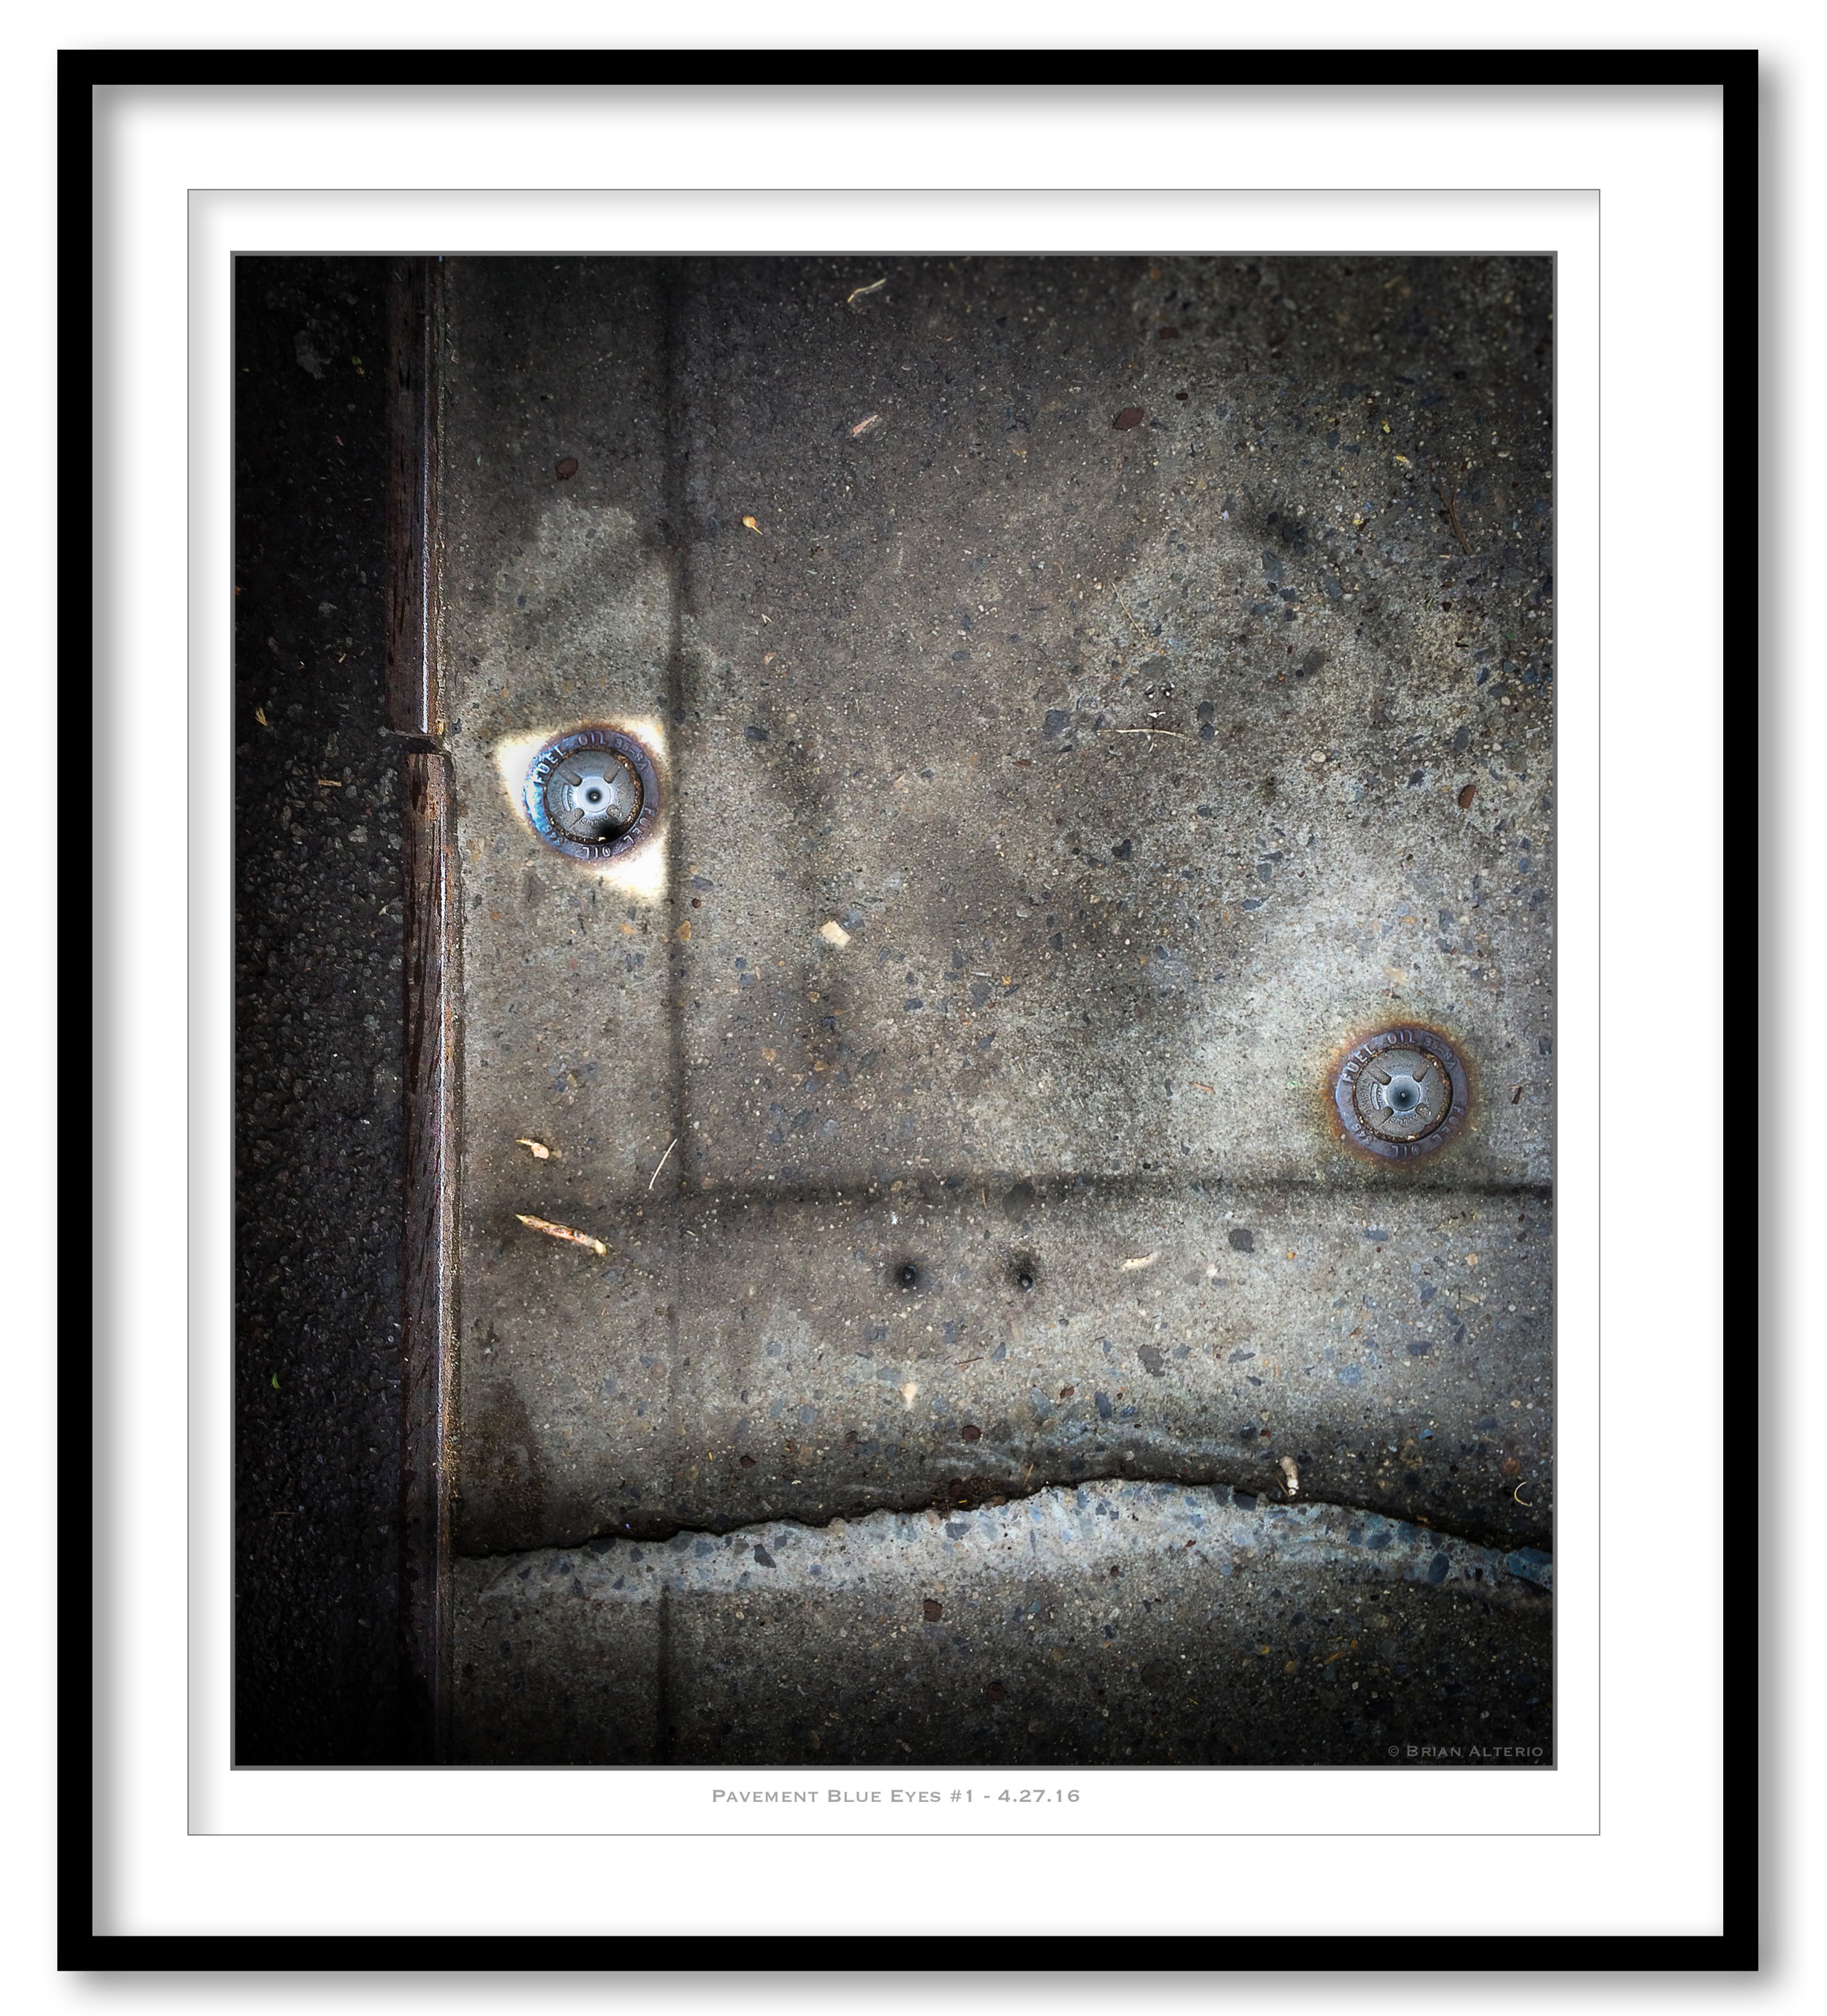 Pavement Blue Eyes #1 - 4.27.16 - Framed.jpg